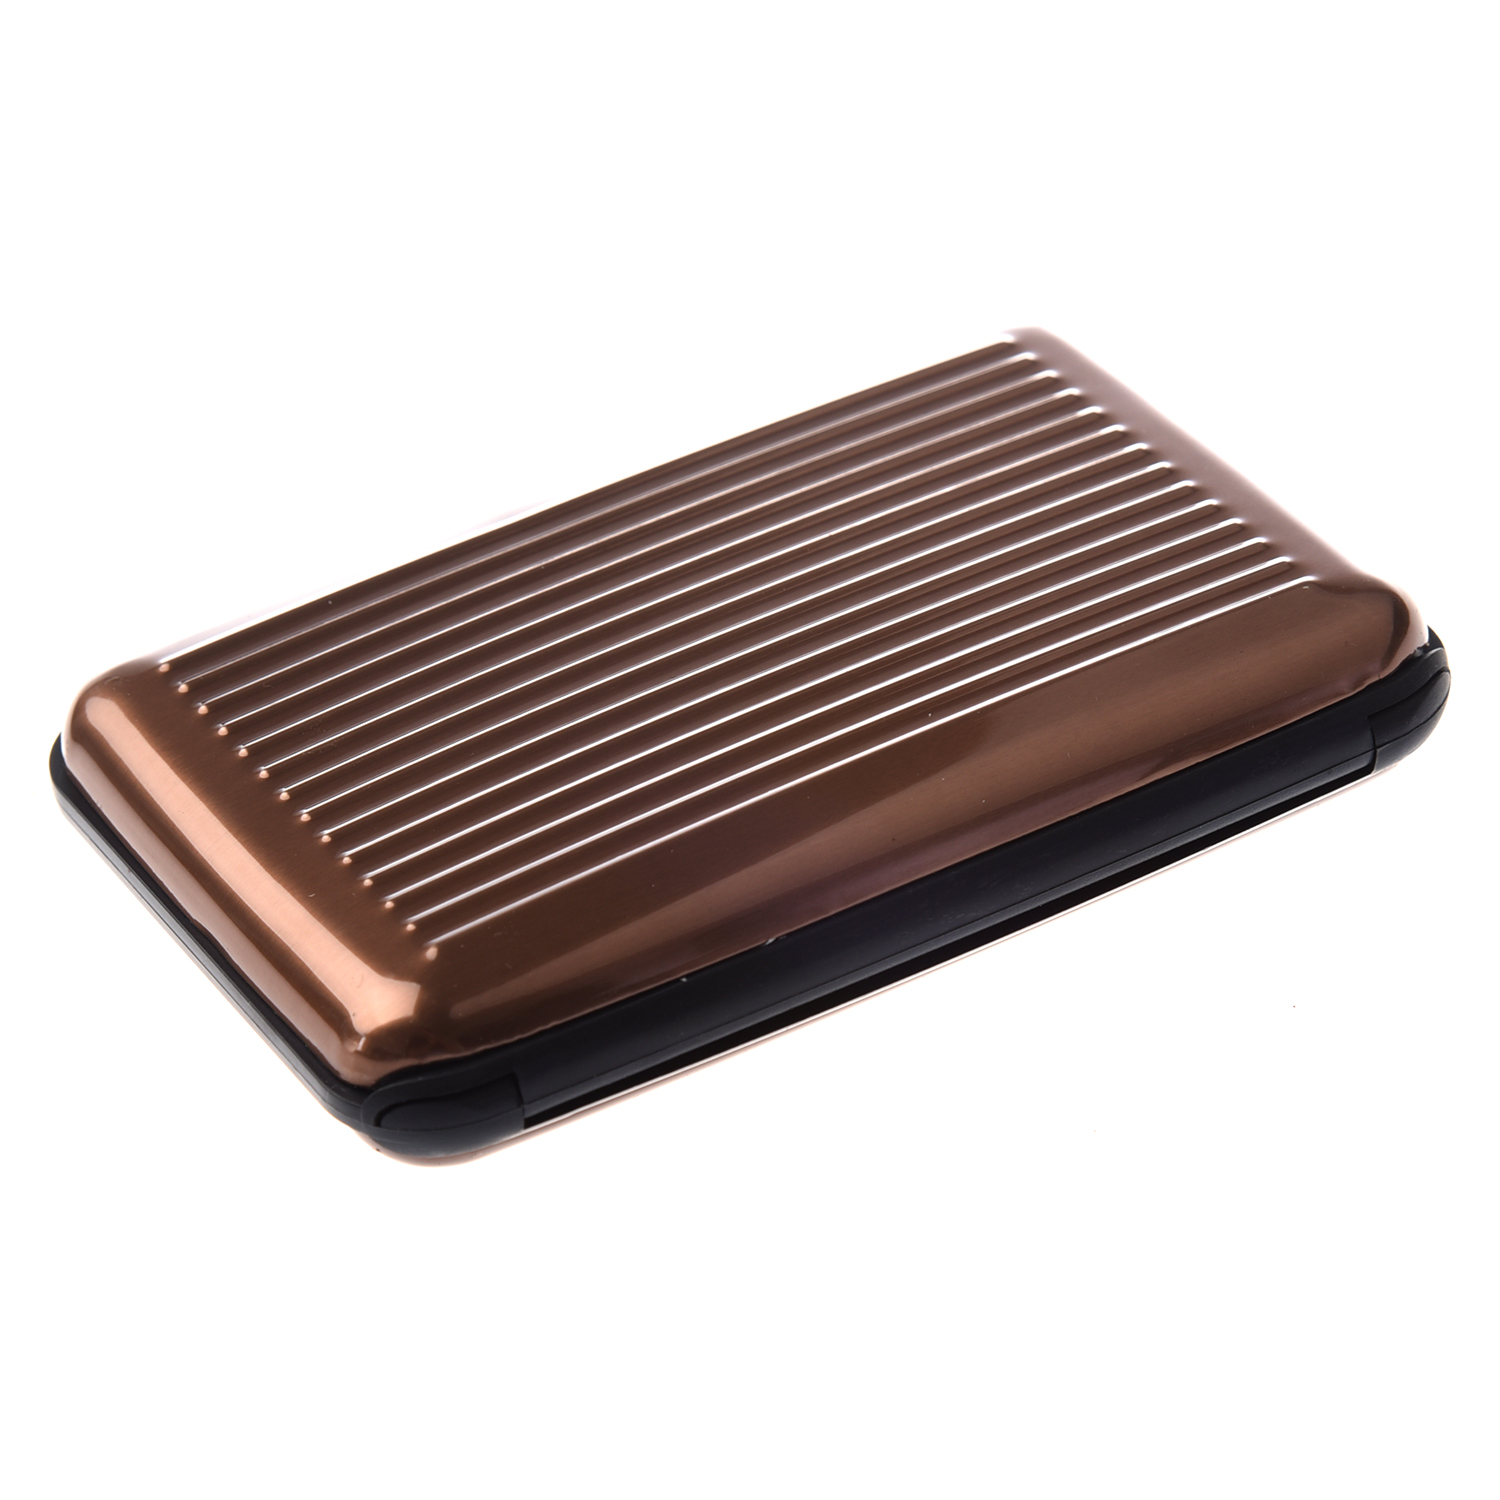 Snny Color Metal Aluminum Business Id Credit Card Case Wallet Holder Box Purse Pocket Brown Stripes In Card Id Holders From Luggage Bags On